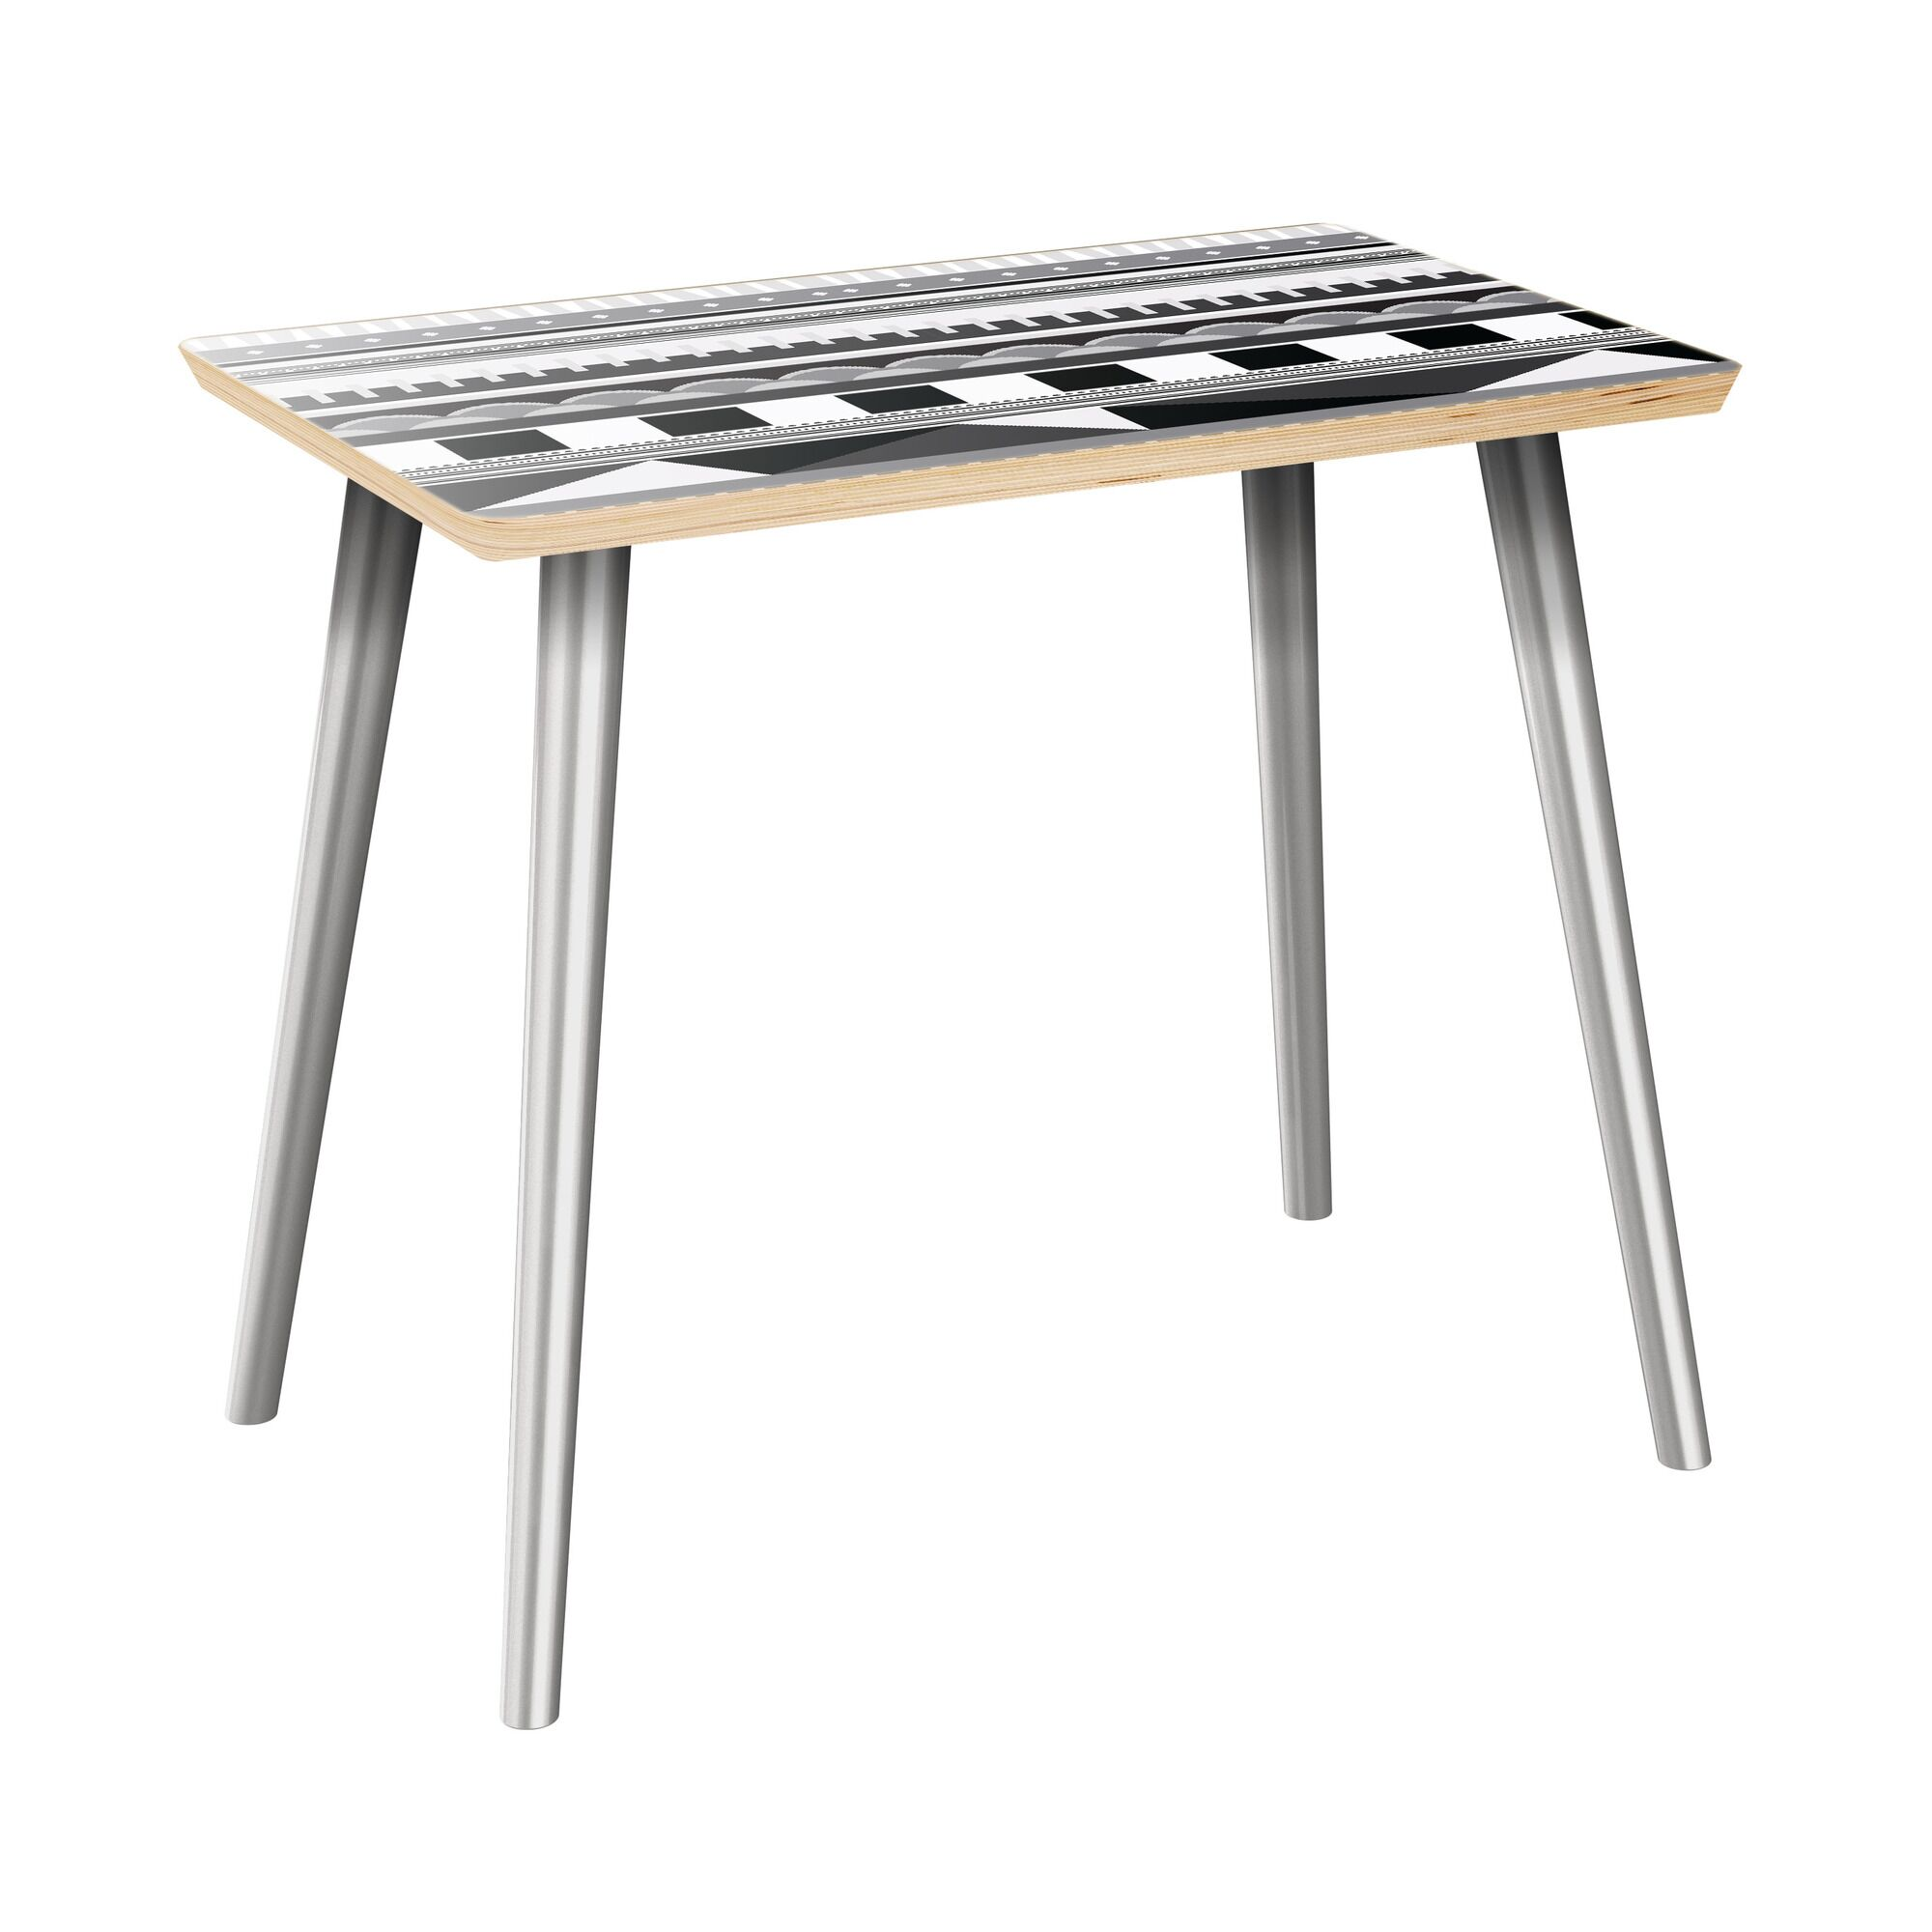 Hornback End Table Table Top Color: Natural, Table Base Color: Chrome